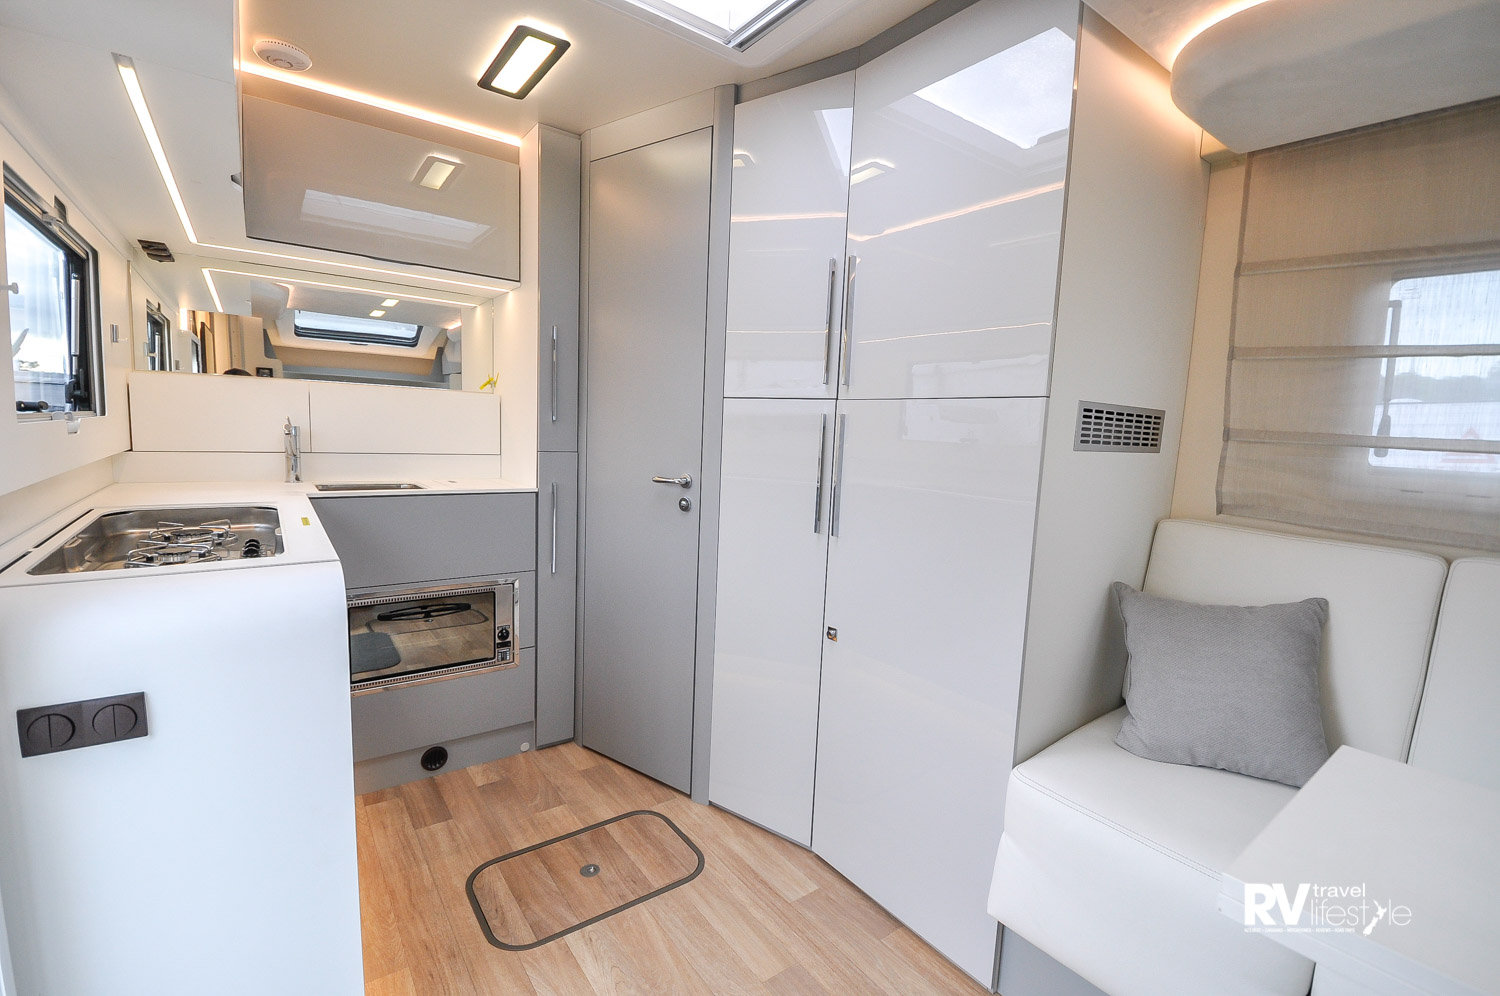 Stepping into the vehicle the kitchen is to the left in the rear, bathroom in the opposite rear corner, and wardrobes and fridge behind those stylish high gloss doors. Bed/lounge/entertainment area is in the front behind the cab, with swivel seats to add to the seating area